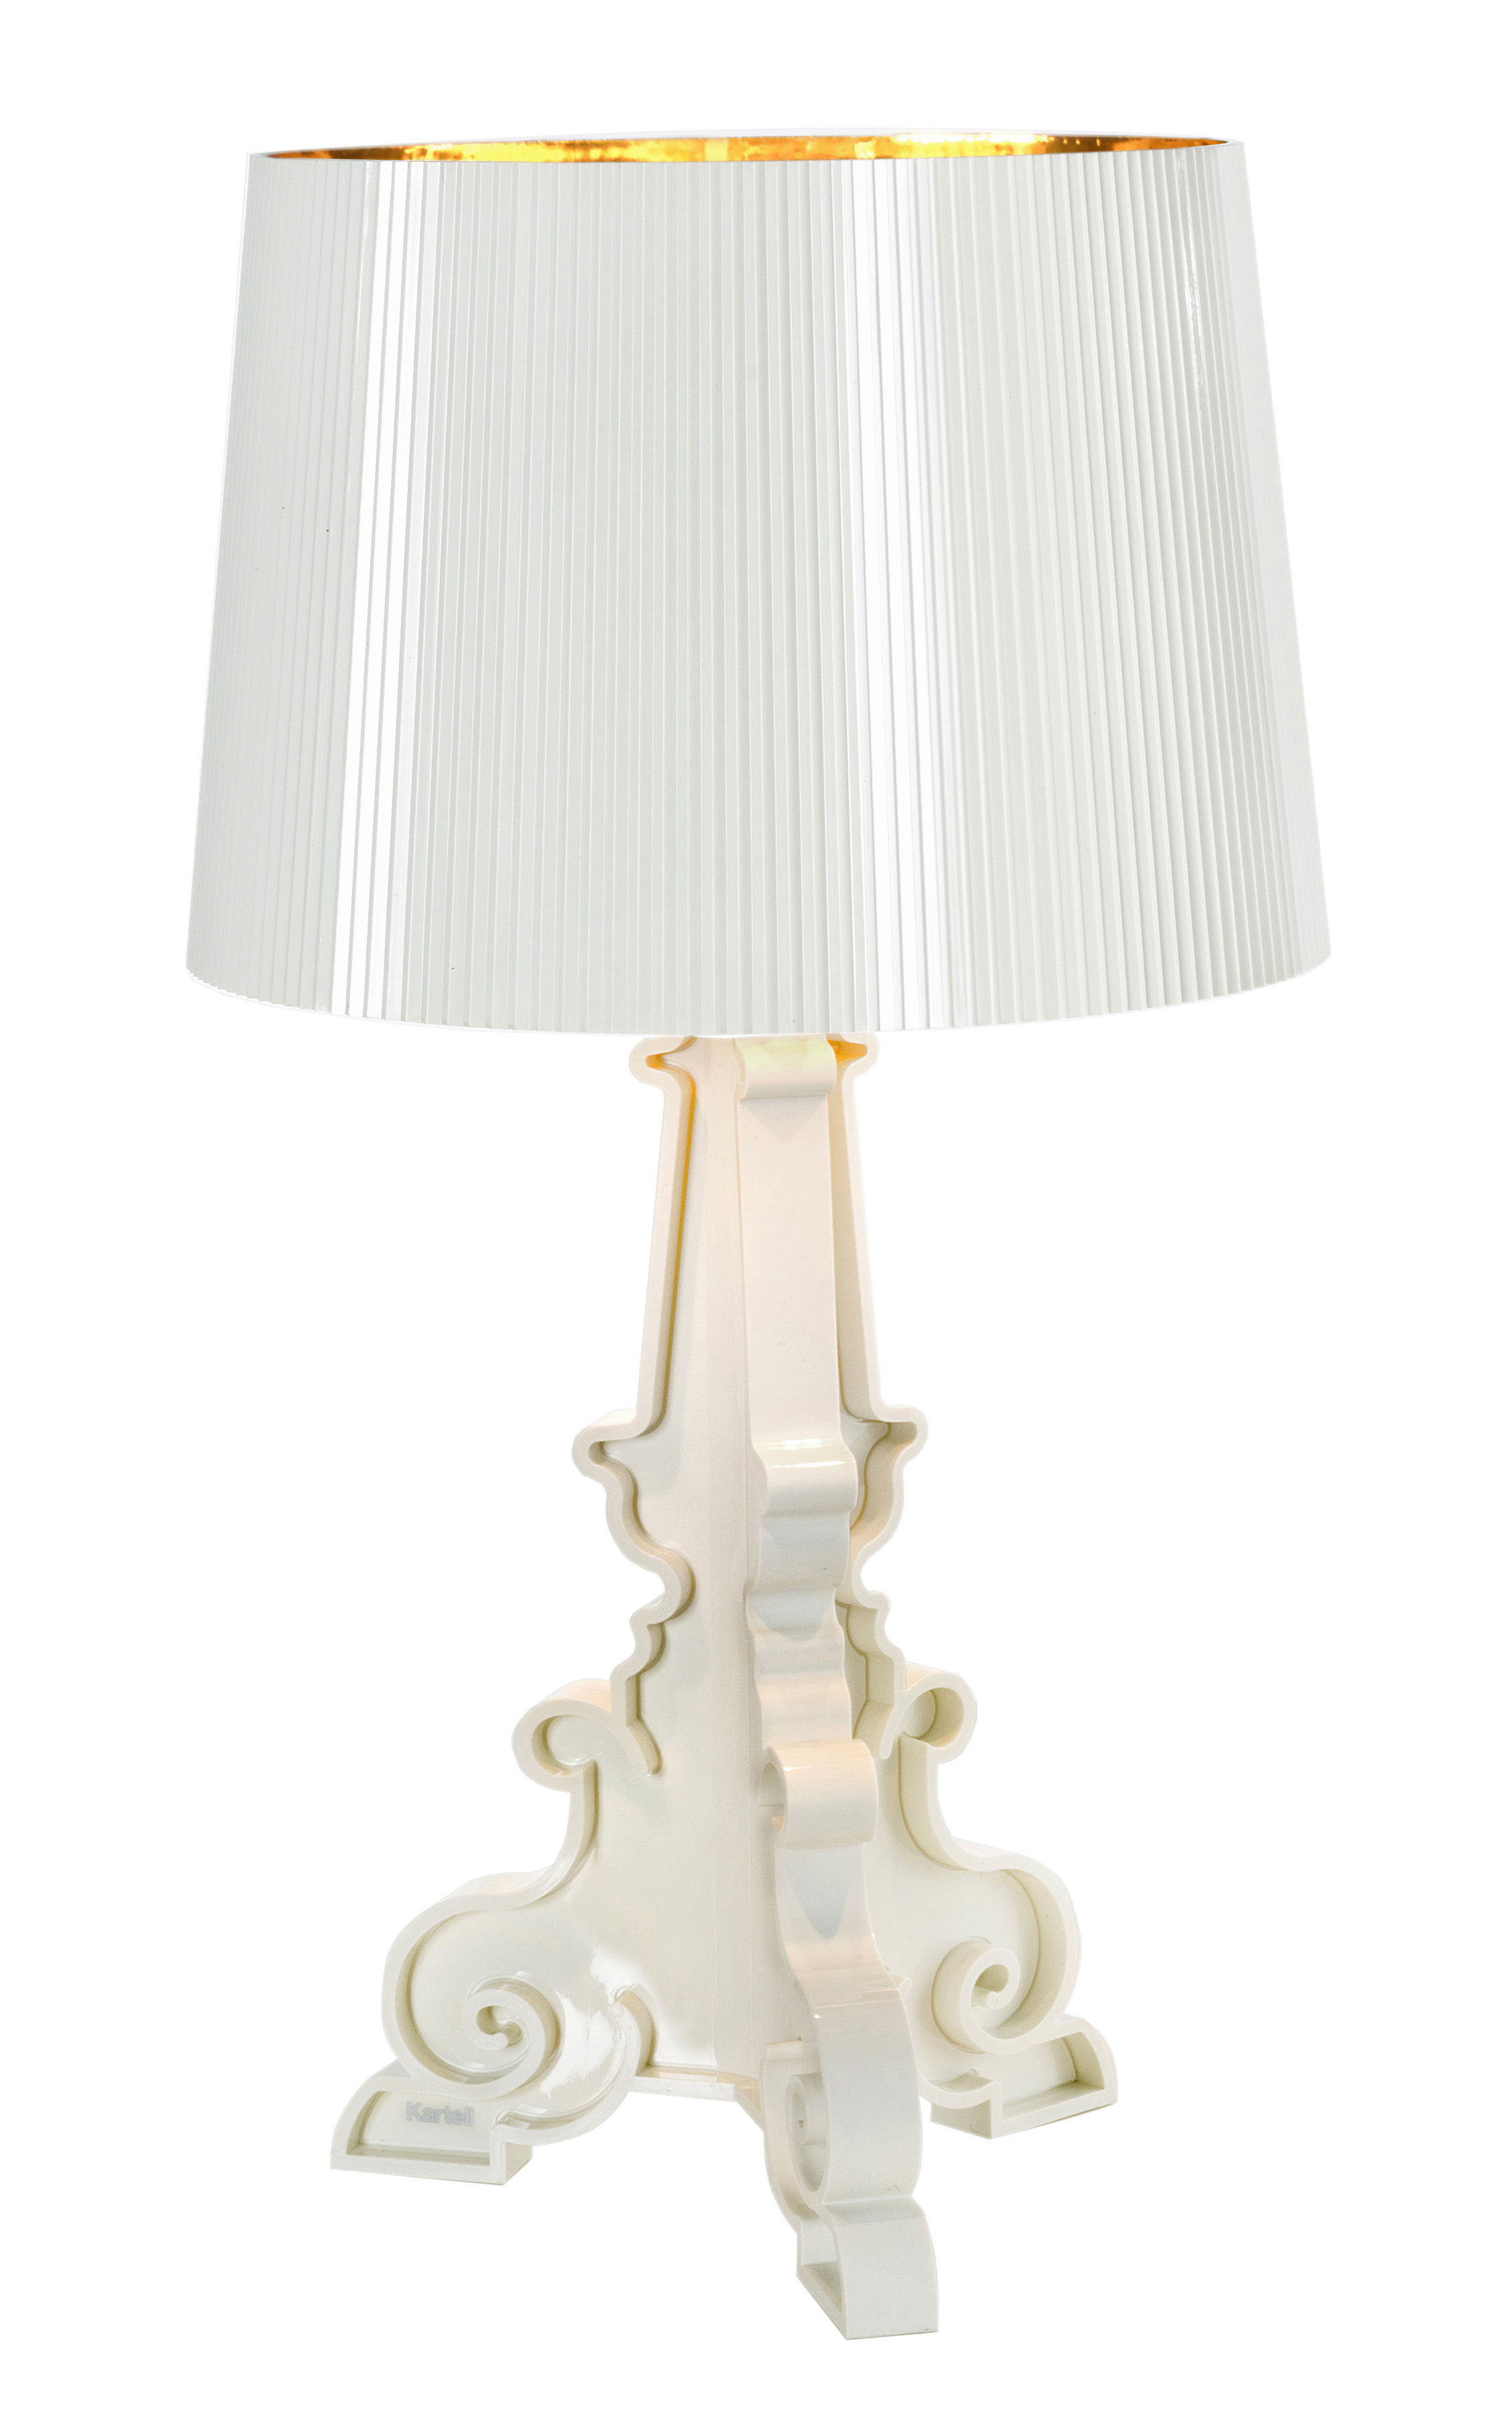 Lighting - Table Lamps - Bourgie Bianca Table lamp by Kartell - White / gold inside - ABS, Polycarbonate